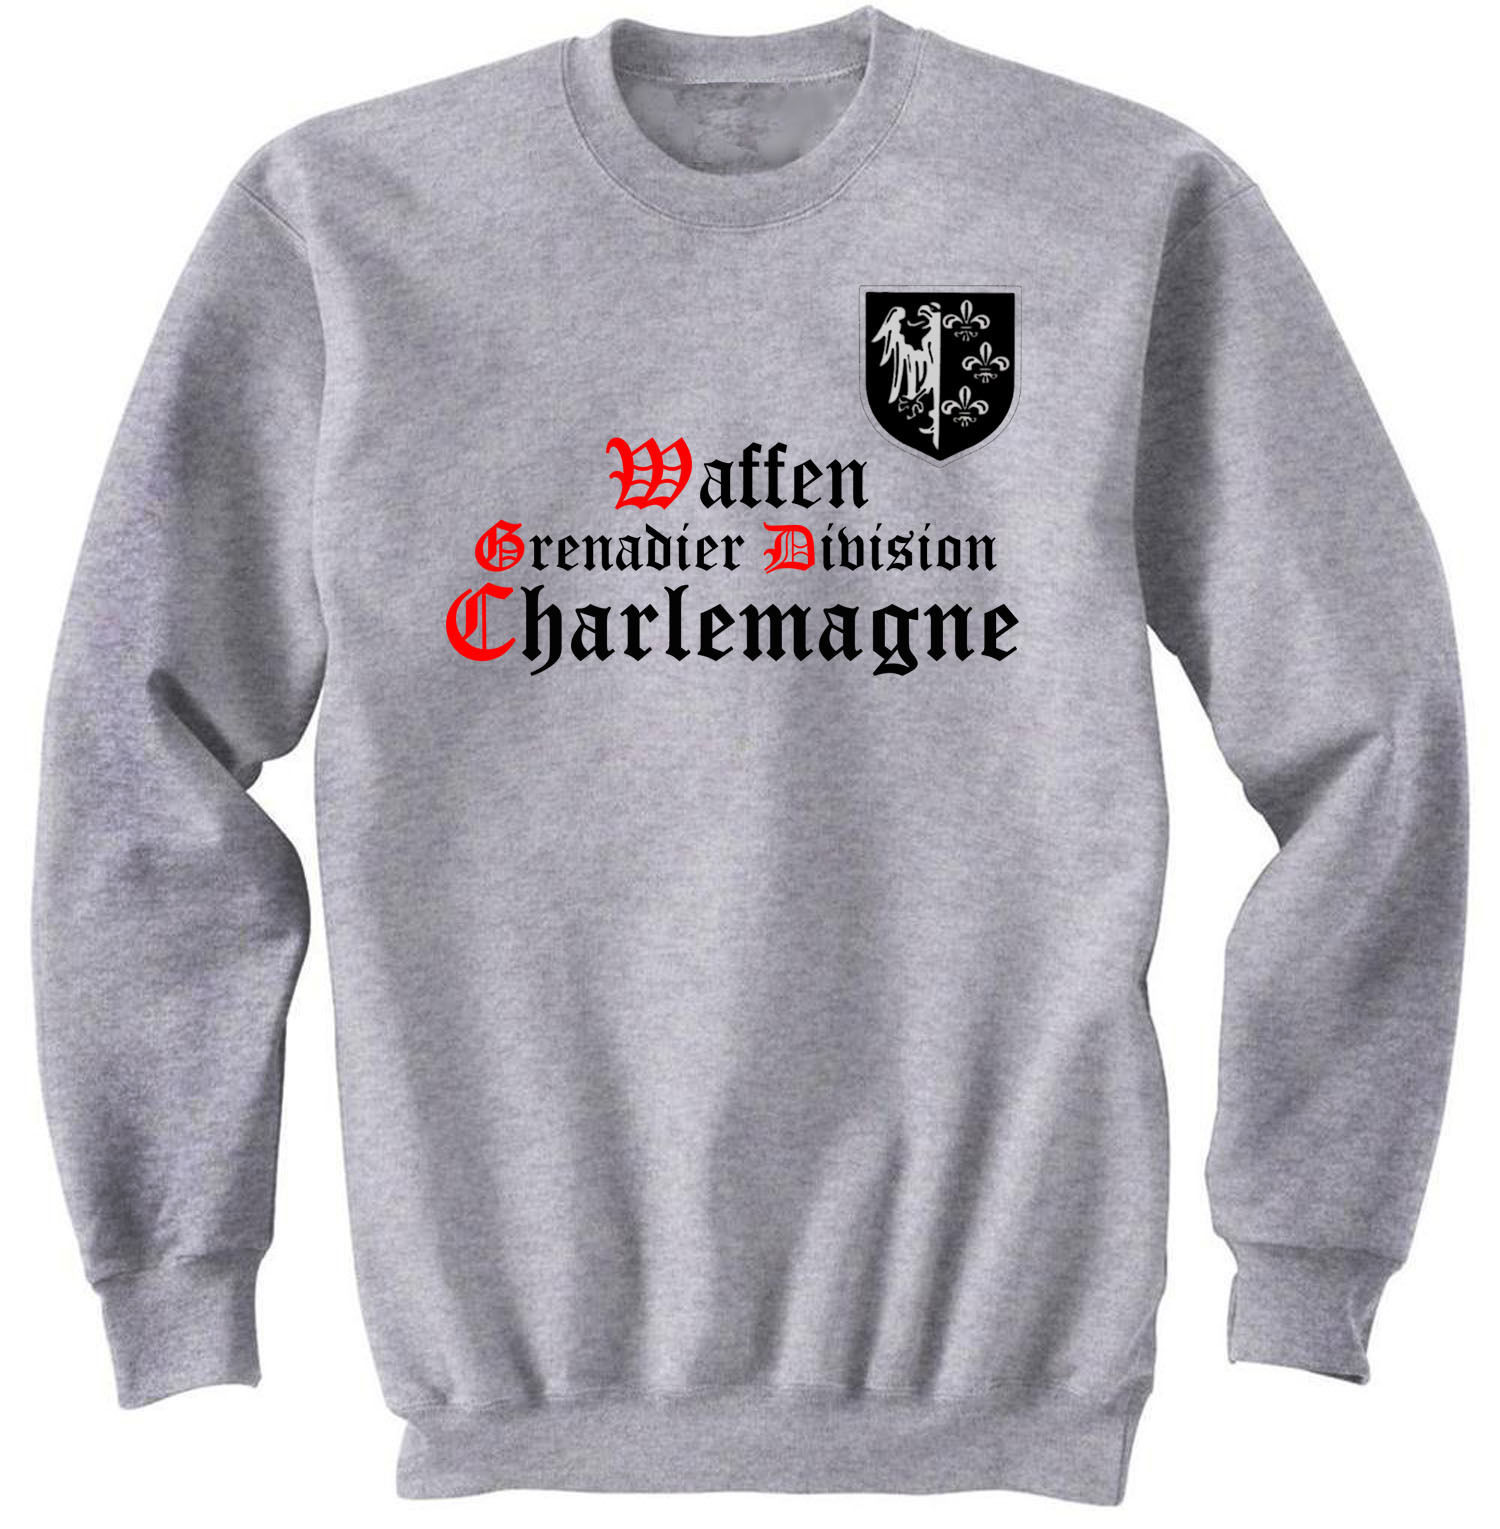 Primary image for WAFFEN GRENADIER DIVISION CHARLEMAGNE -  NEW GRAPHIC SWEATSHIRT- S-M-L-XL-XXL